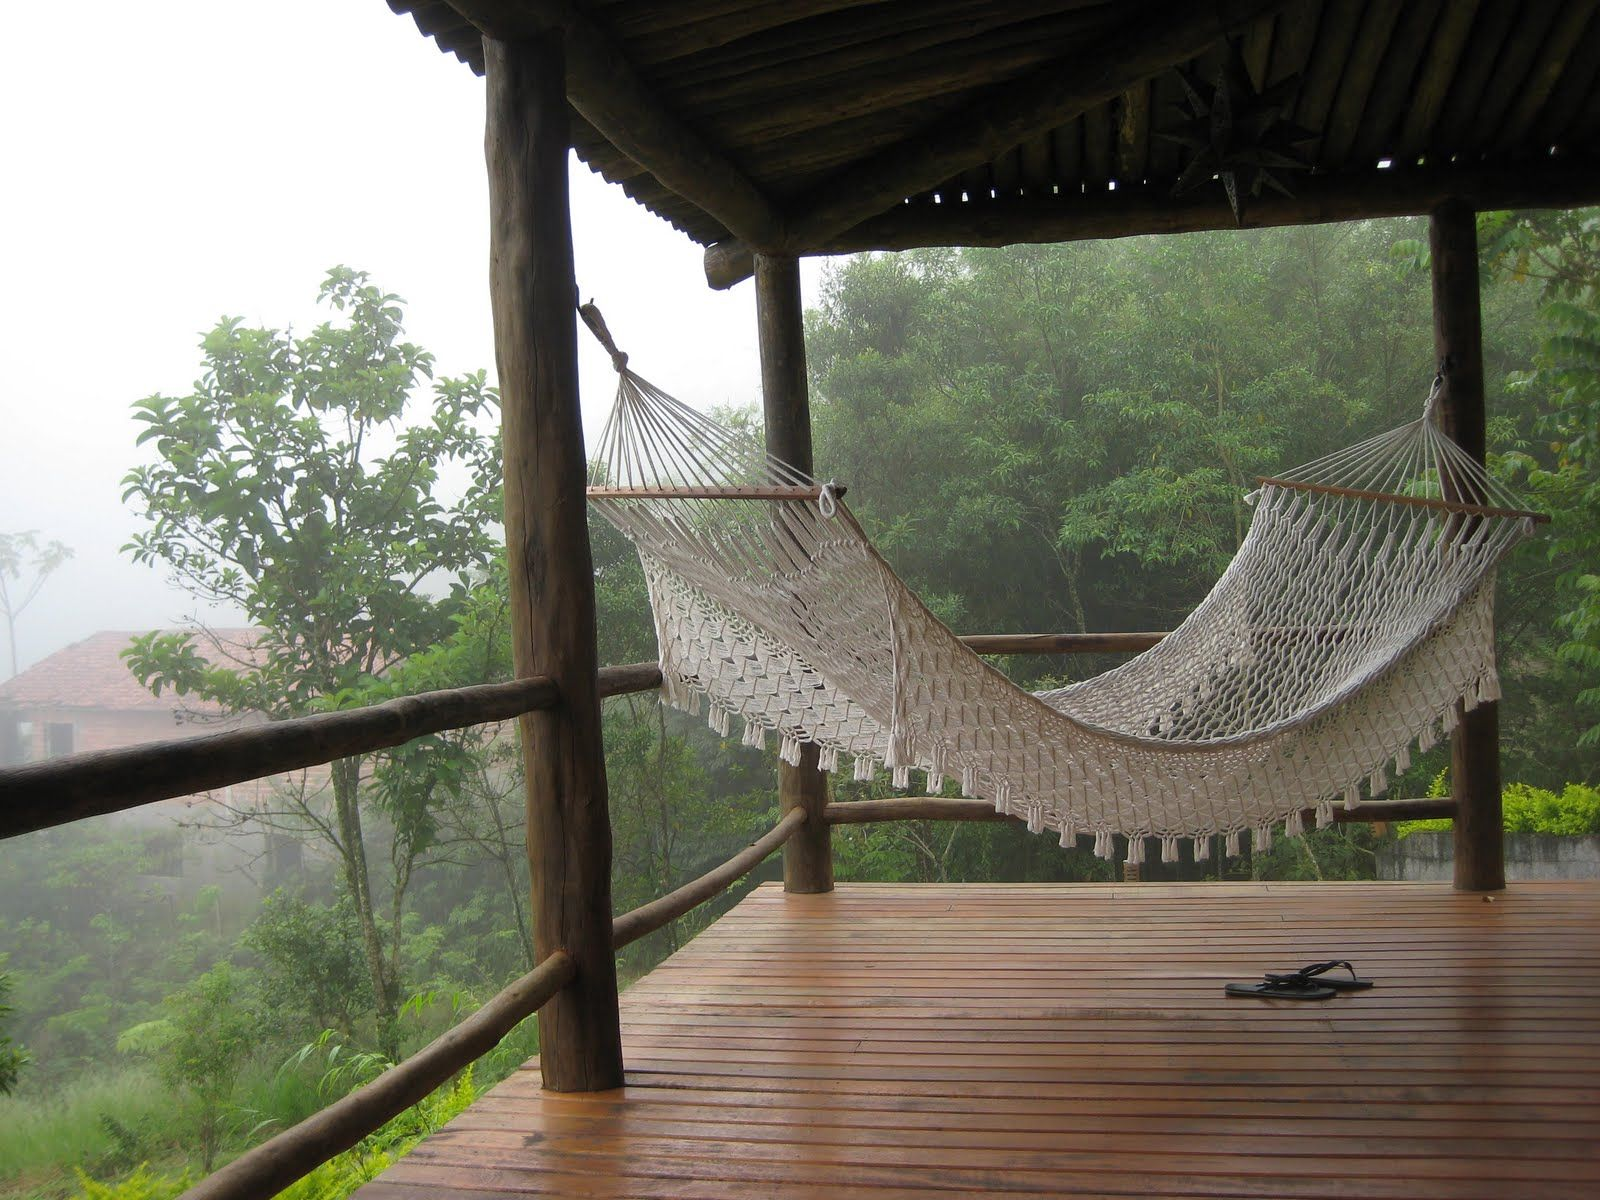 serene   hammock and deck idea  just looking at this made me feel relaxed  porch   yes yes oh my yes  i would love one on these in my garden      rh   pinterest